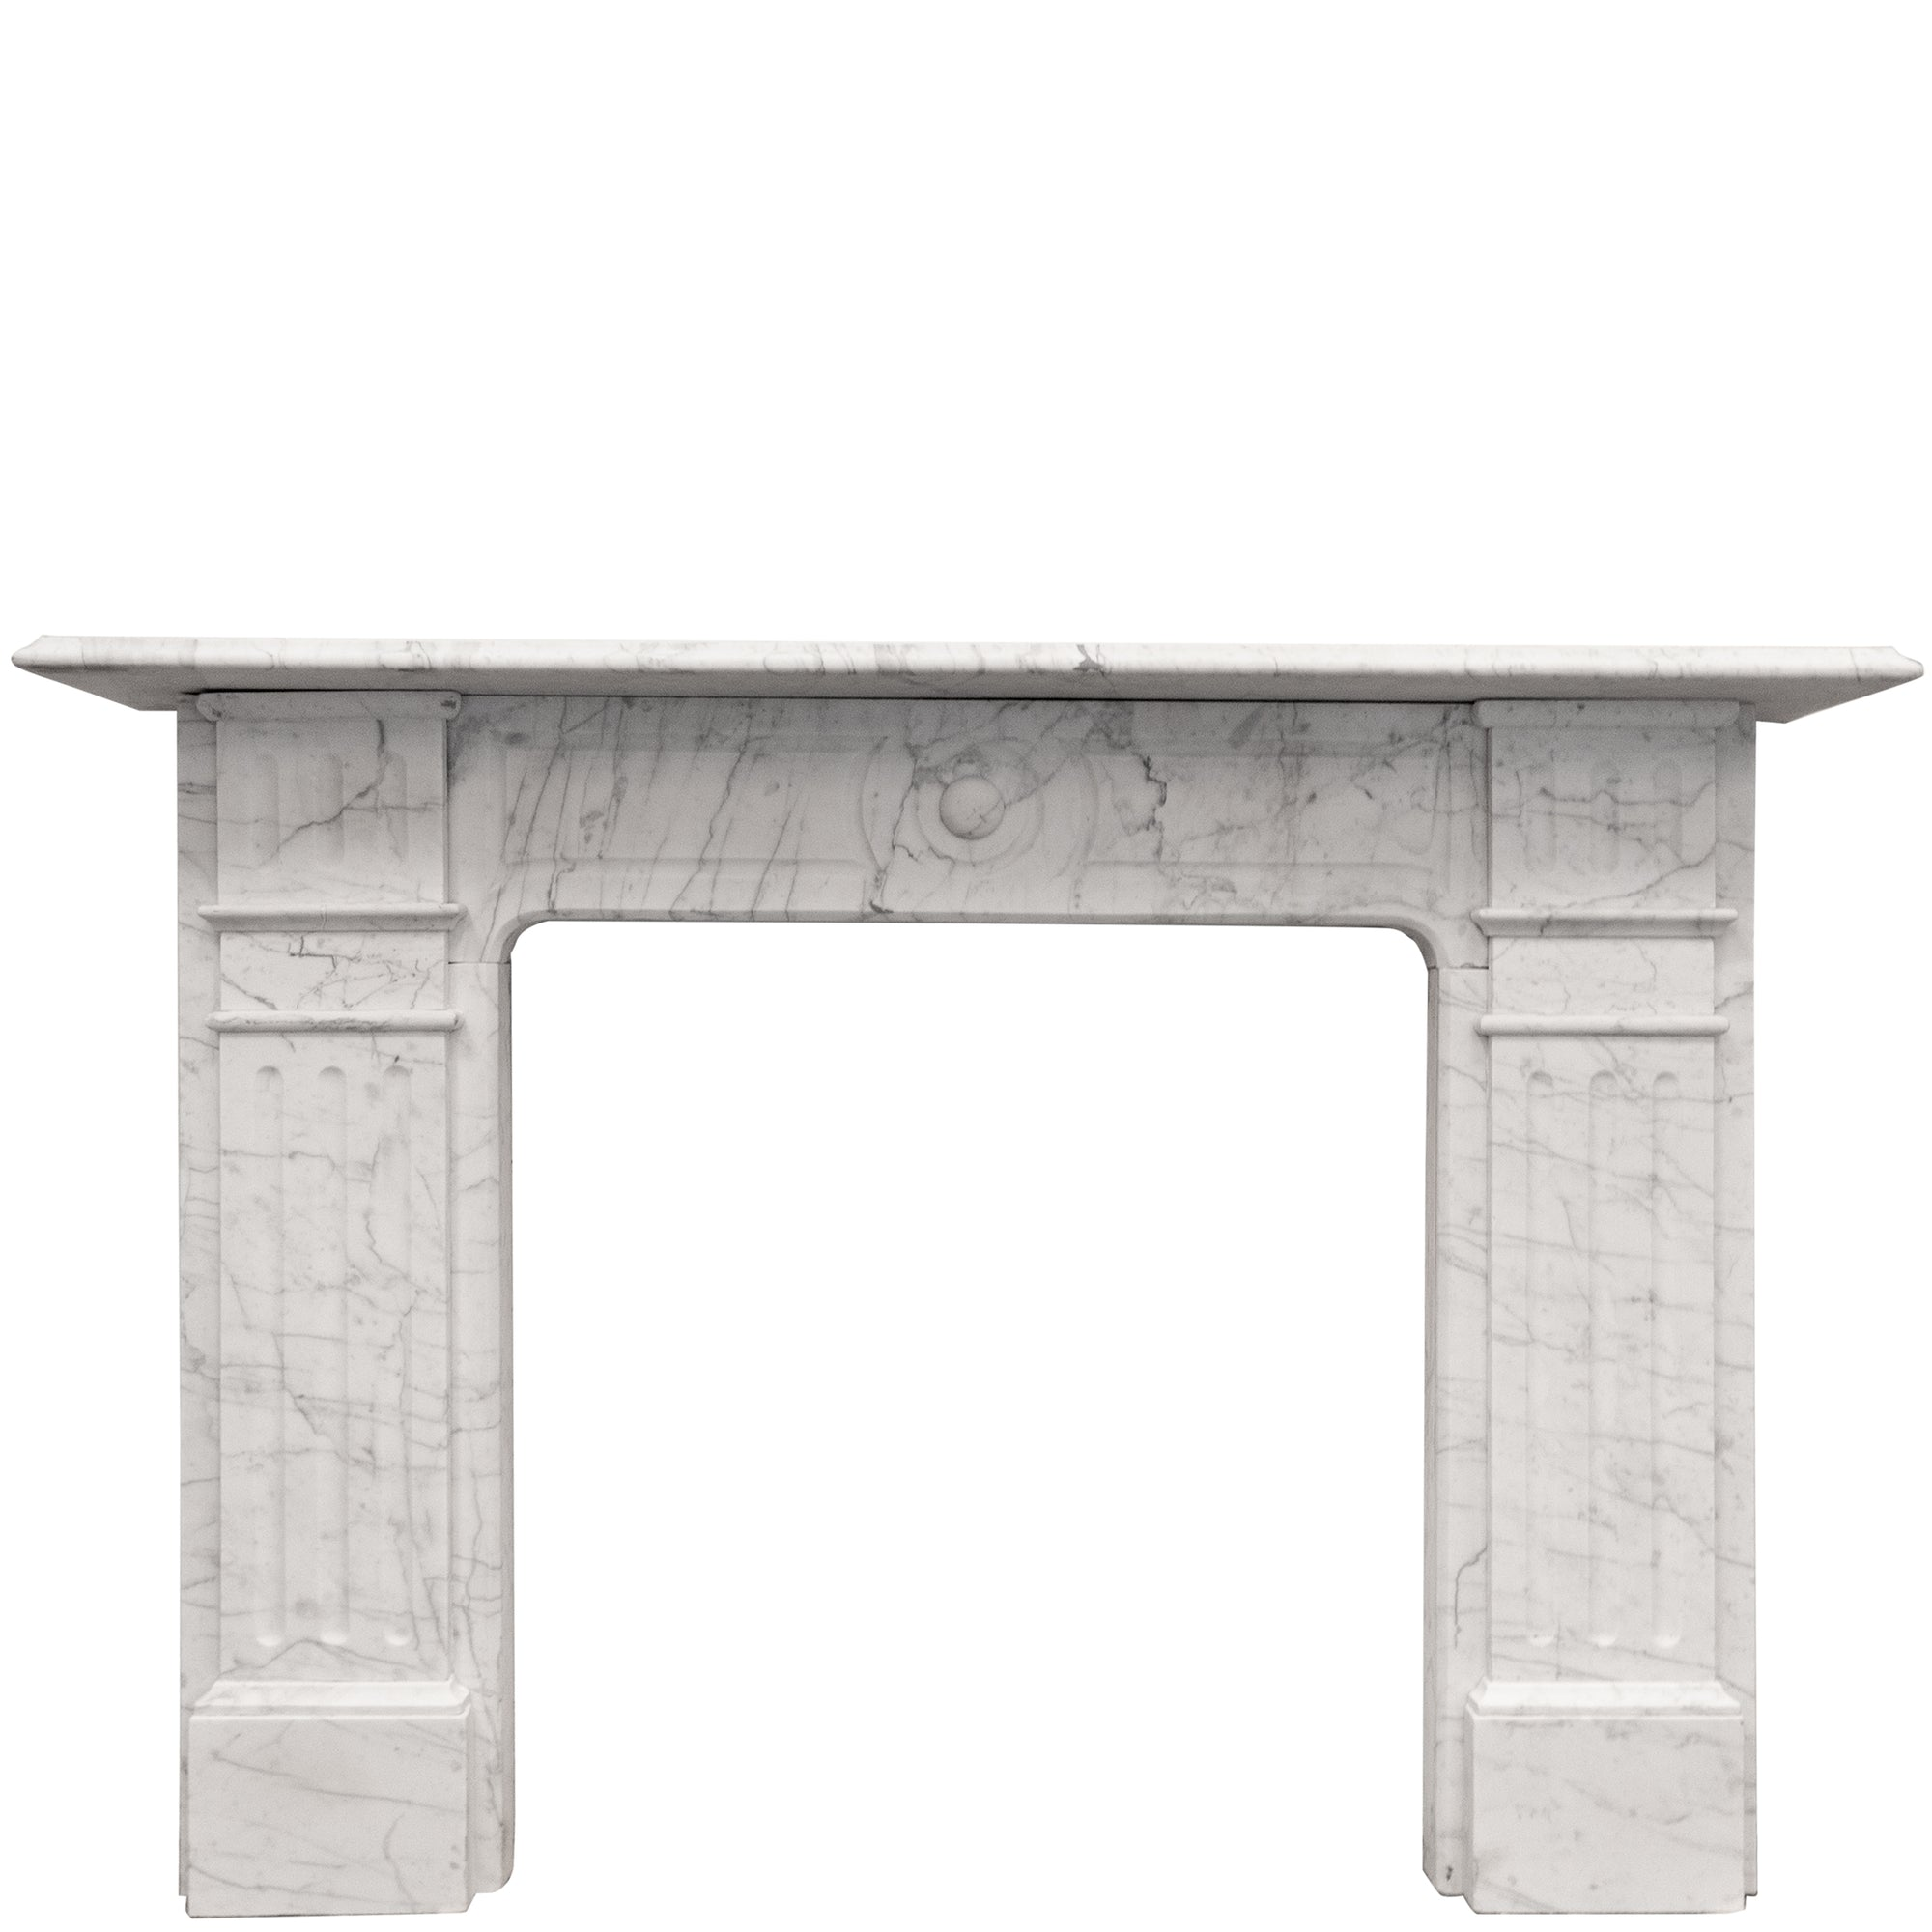 Antique Edwardian Carrara Marble Fireplace Surround